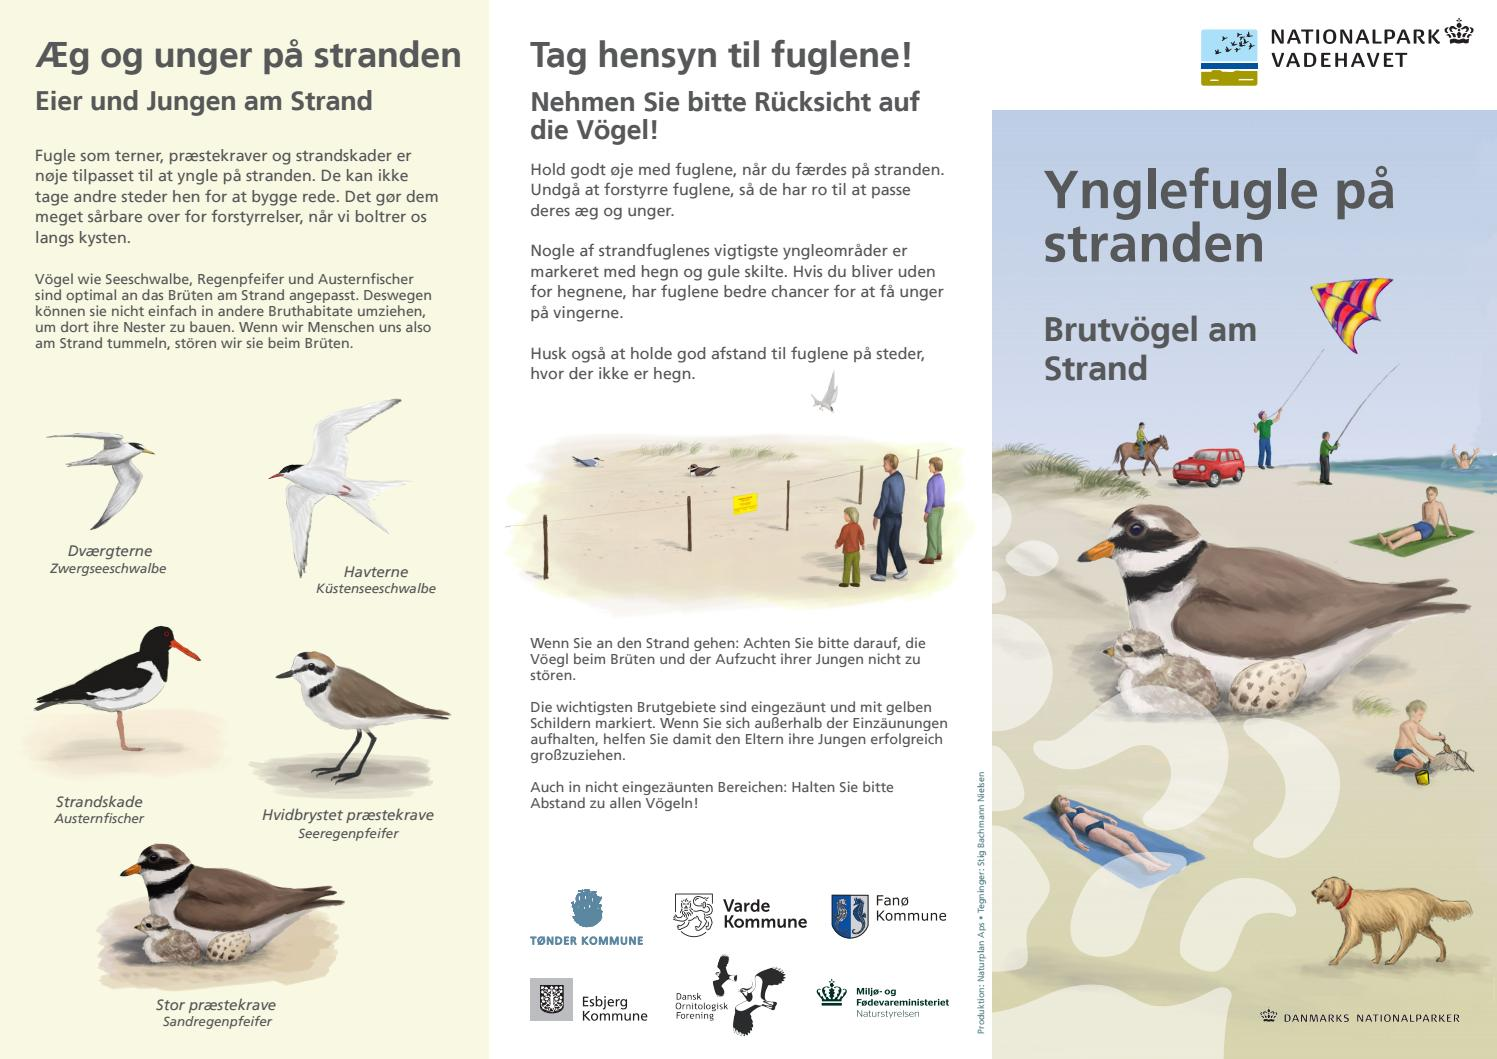 ynglefugle på stranden by nationalpark vadehavet - issuu